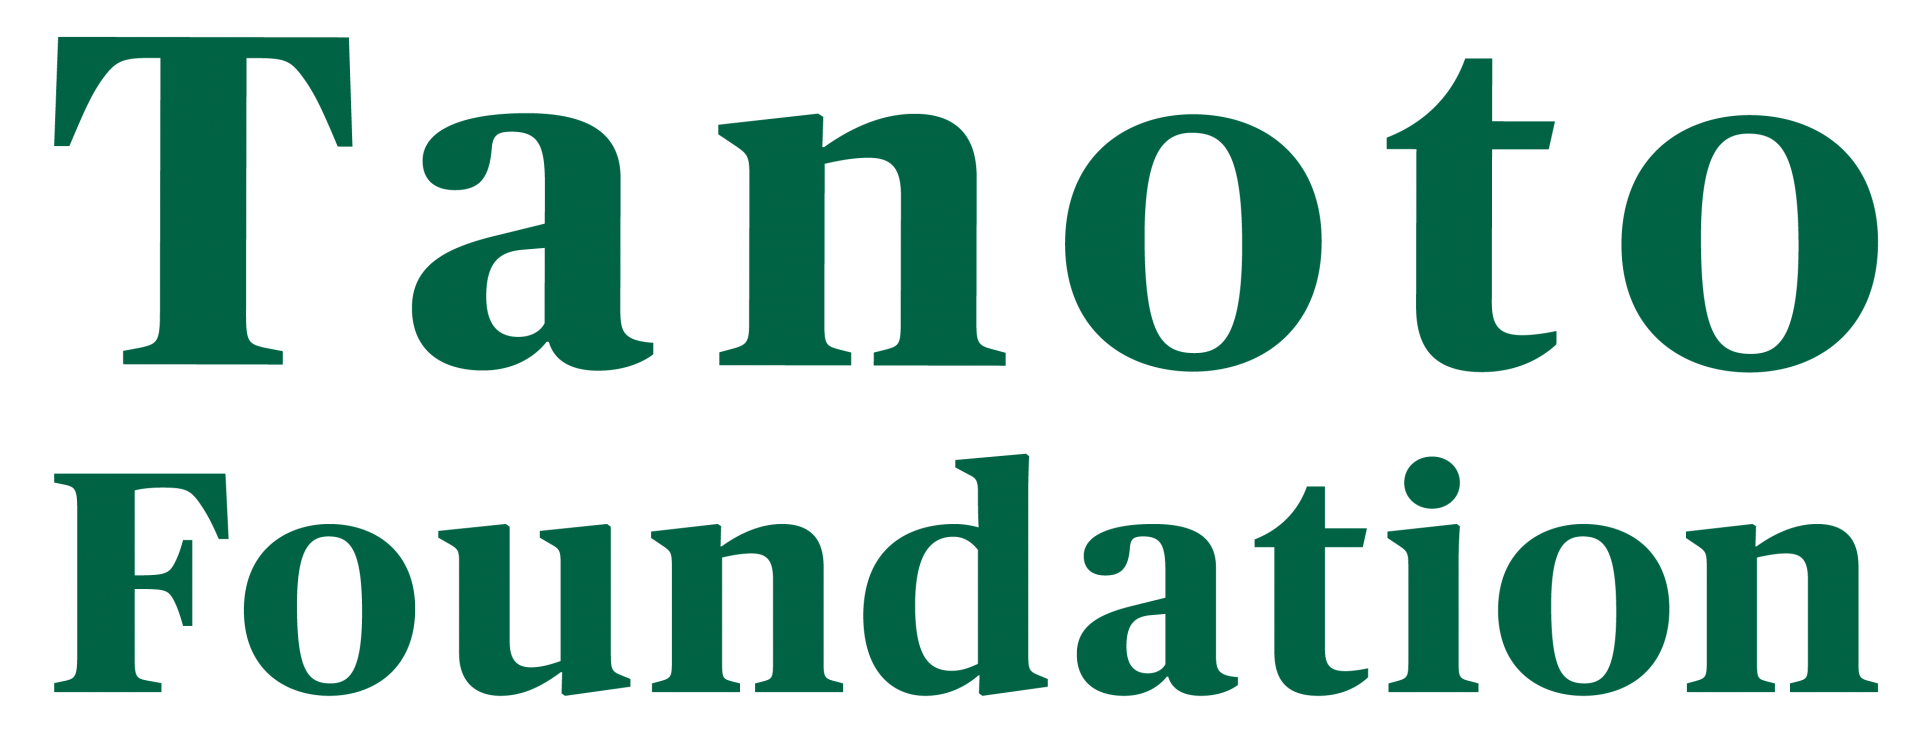 Tanoto Foundation Donates 500 Tons of Oxygen for Covid-19 Patients